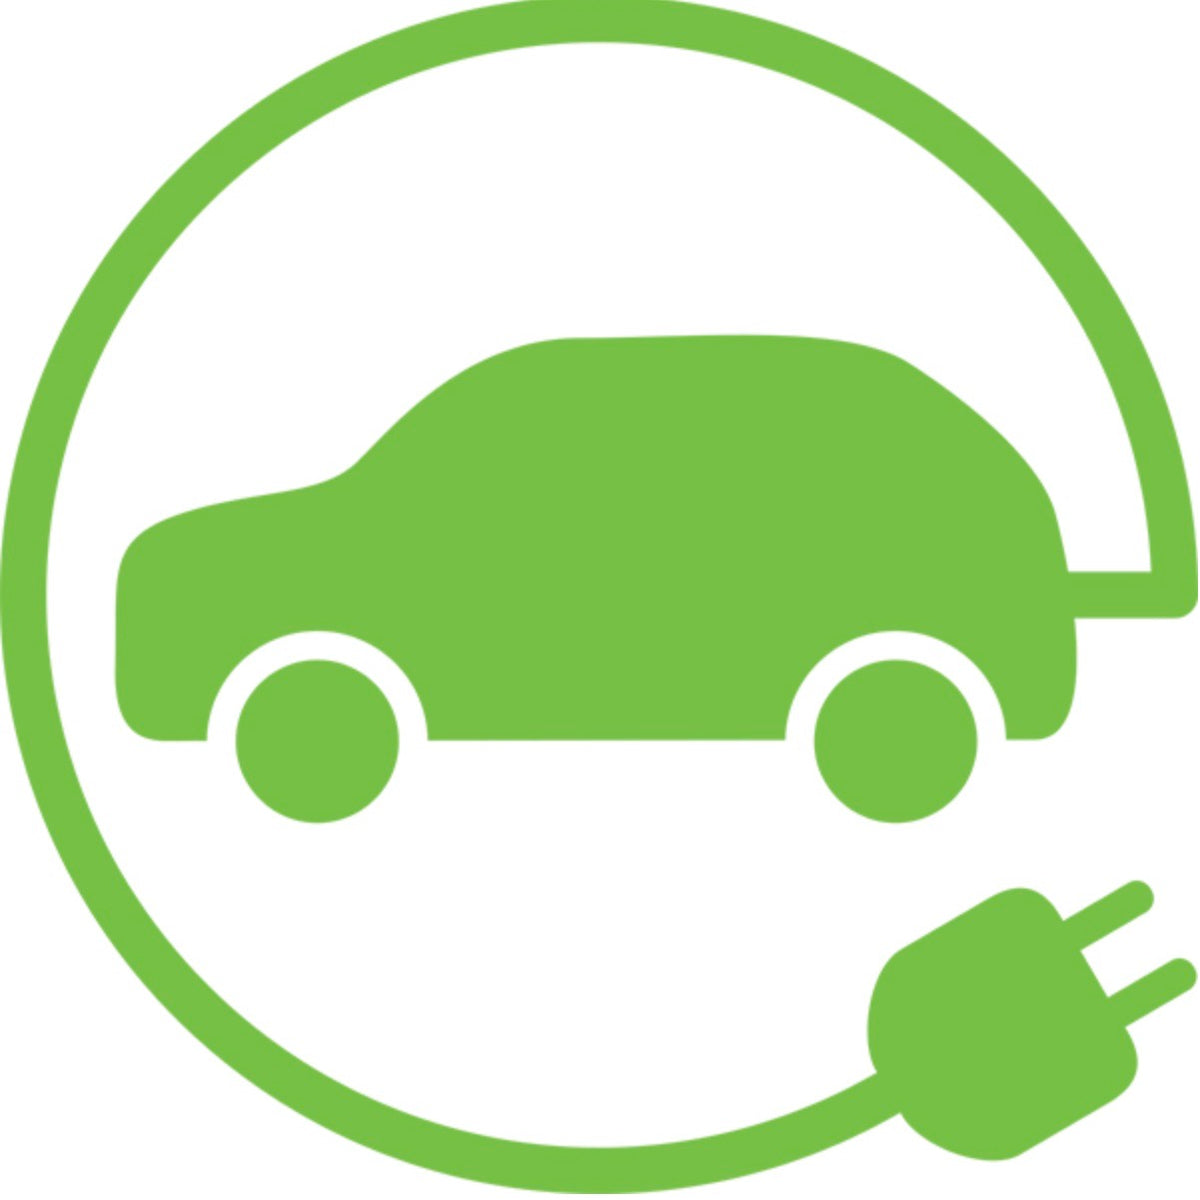 Learn to drive in an electric vehicle